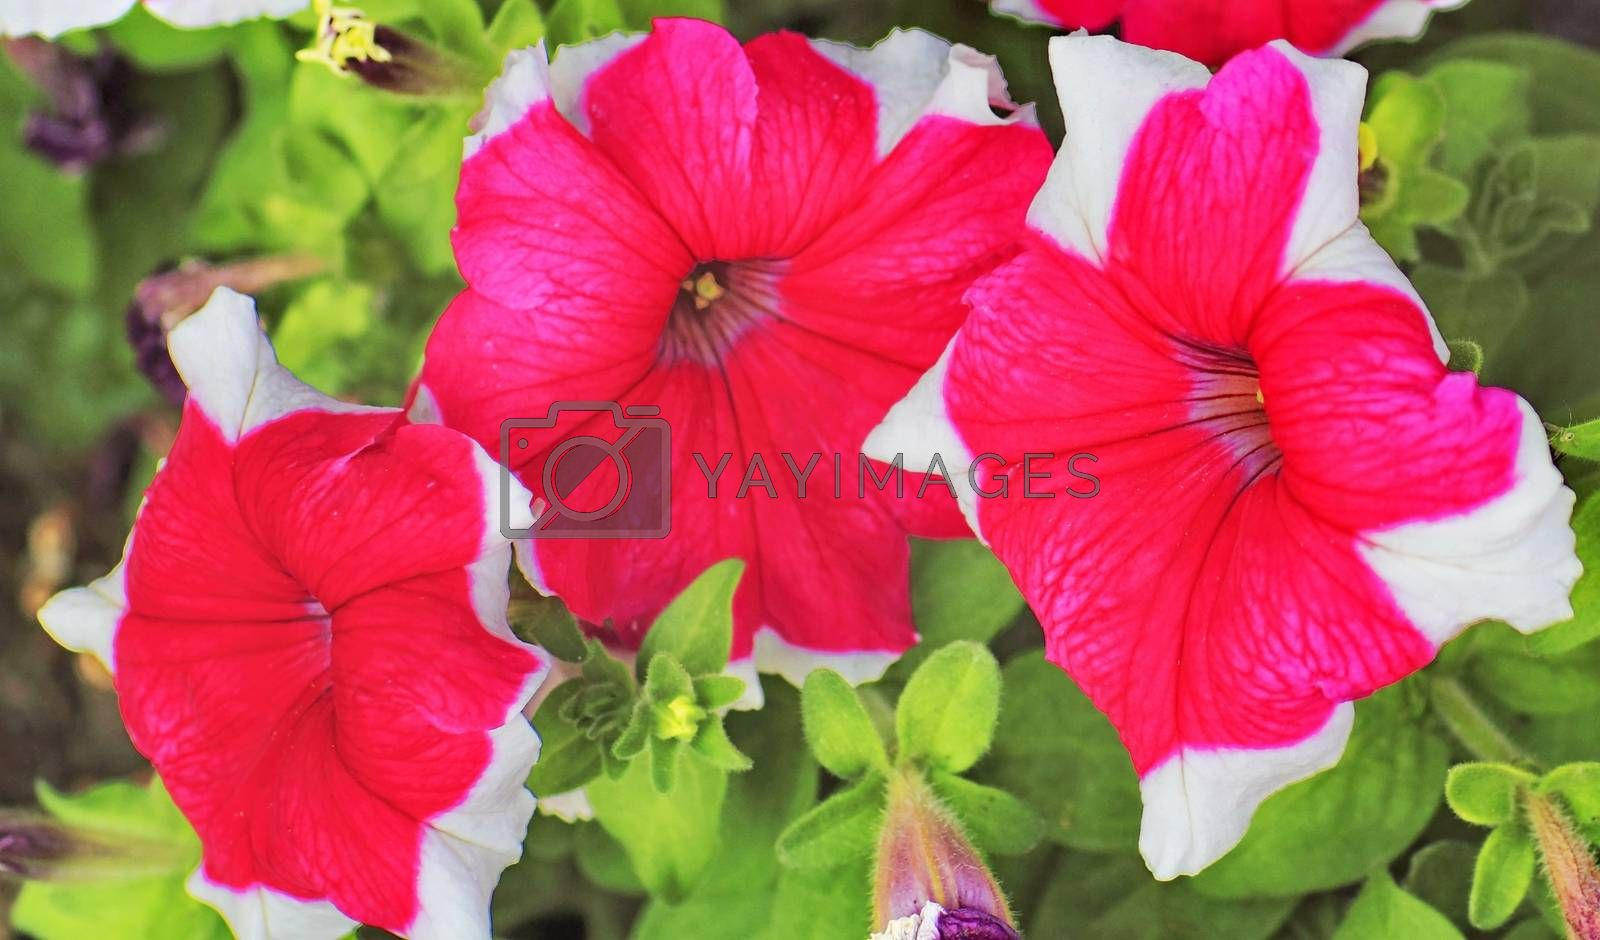 Royalty free image of flowers on a bed in the Park by victorych